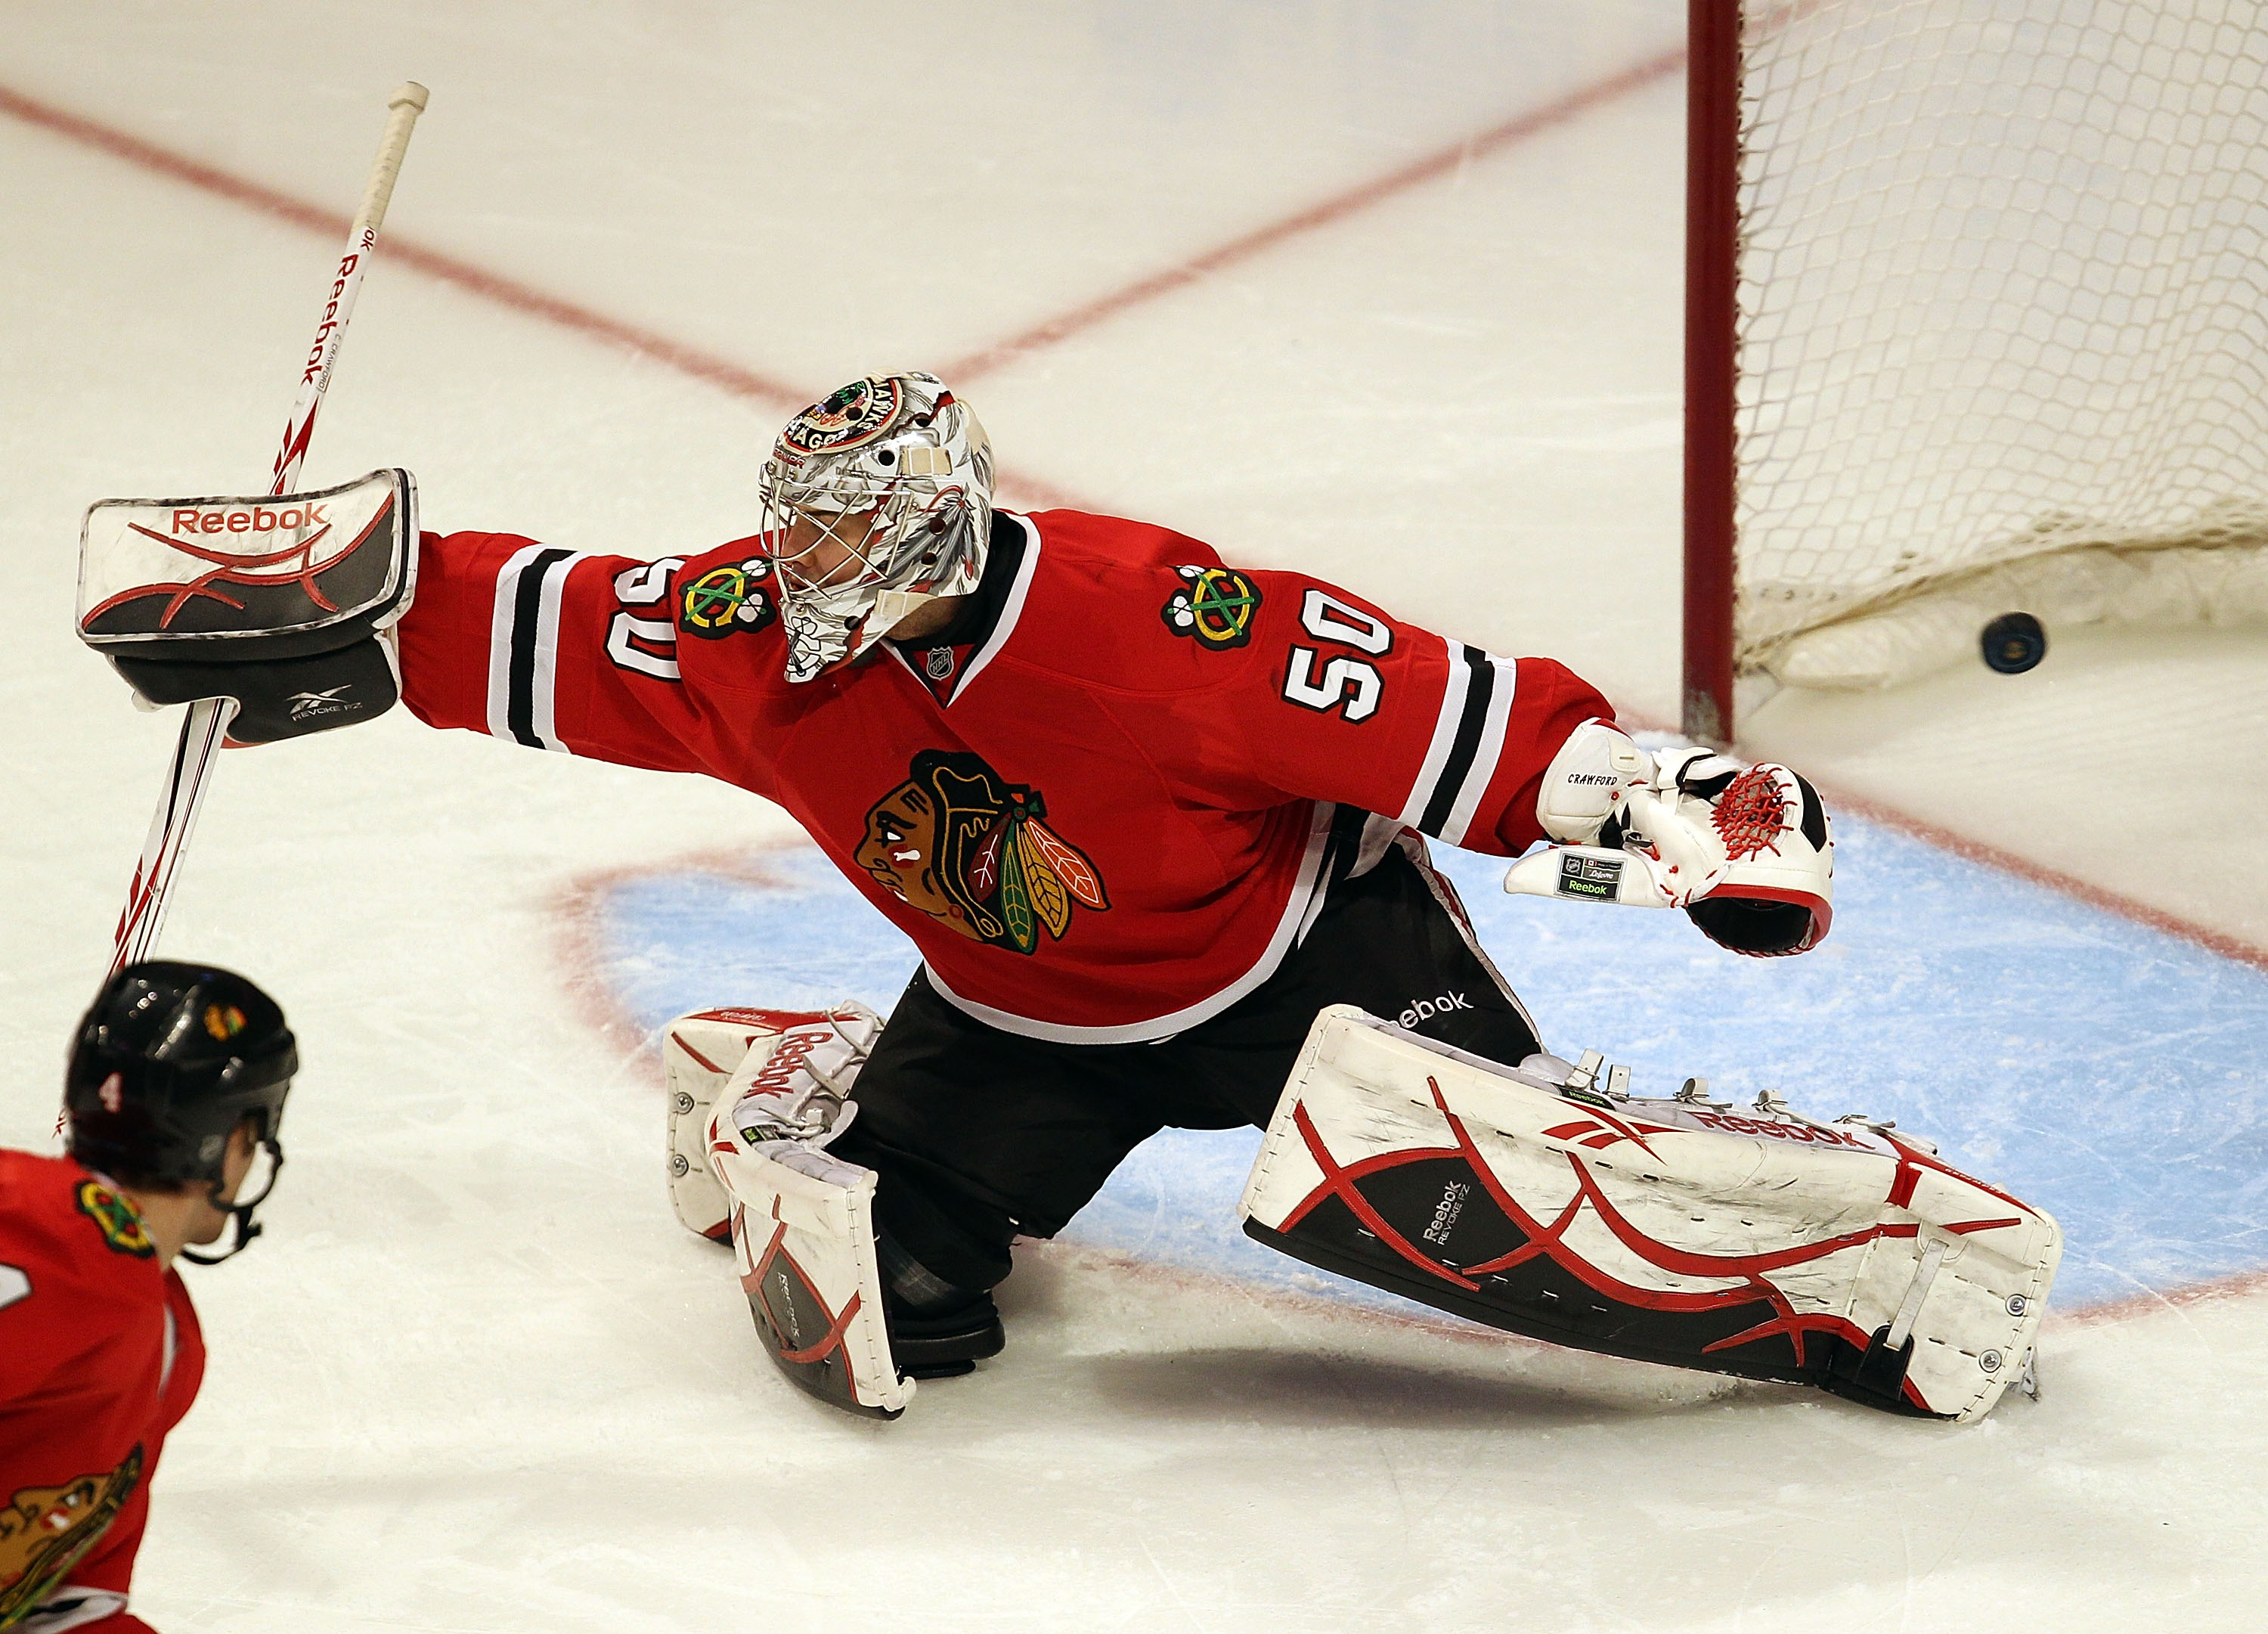 Rookie goaltender Corey Crawford has been a pleasant surprise for the defending Stanley Cup Champions